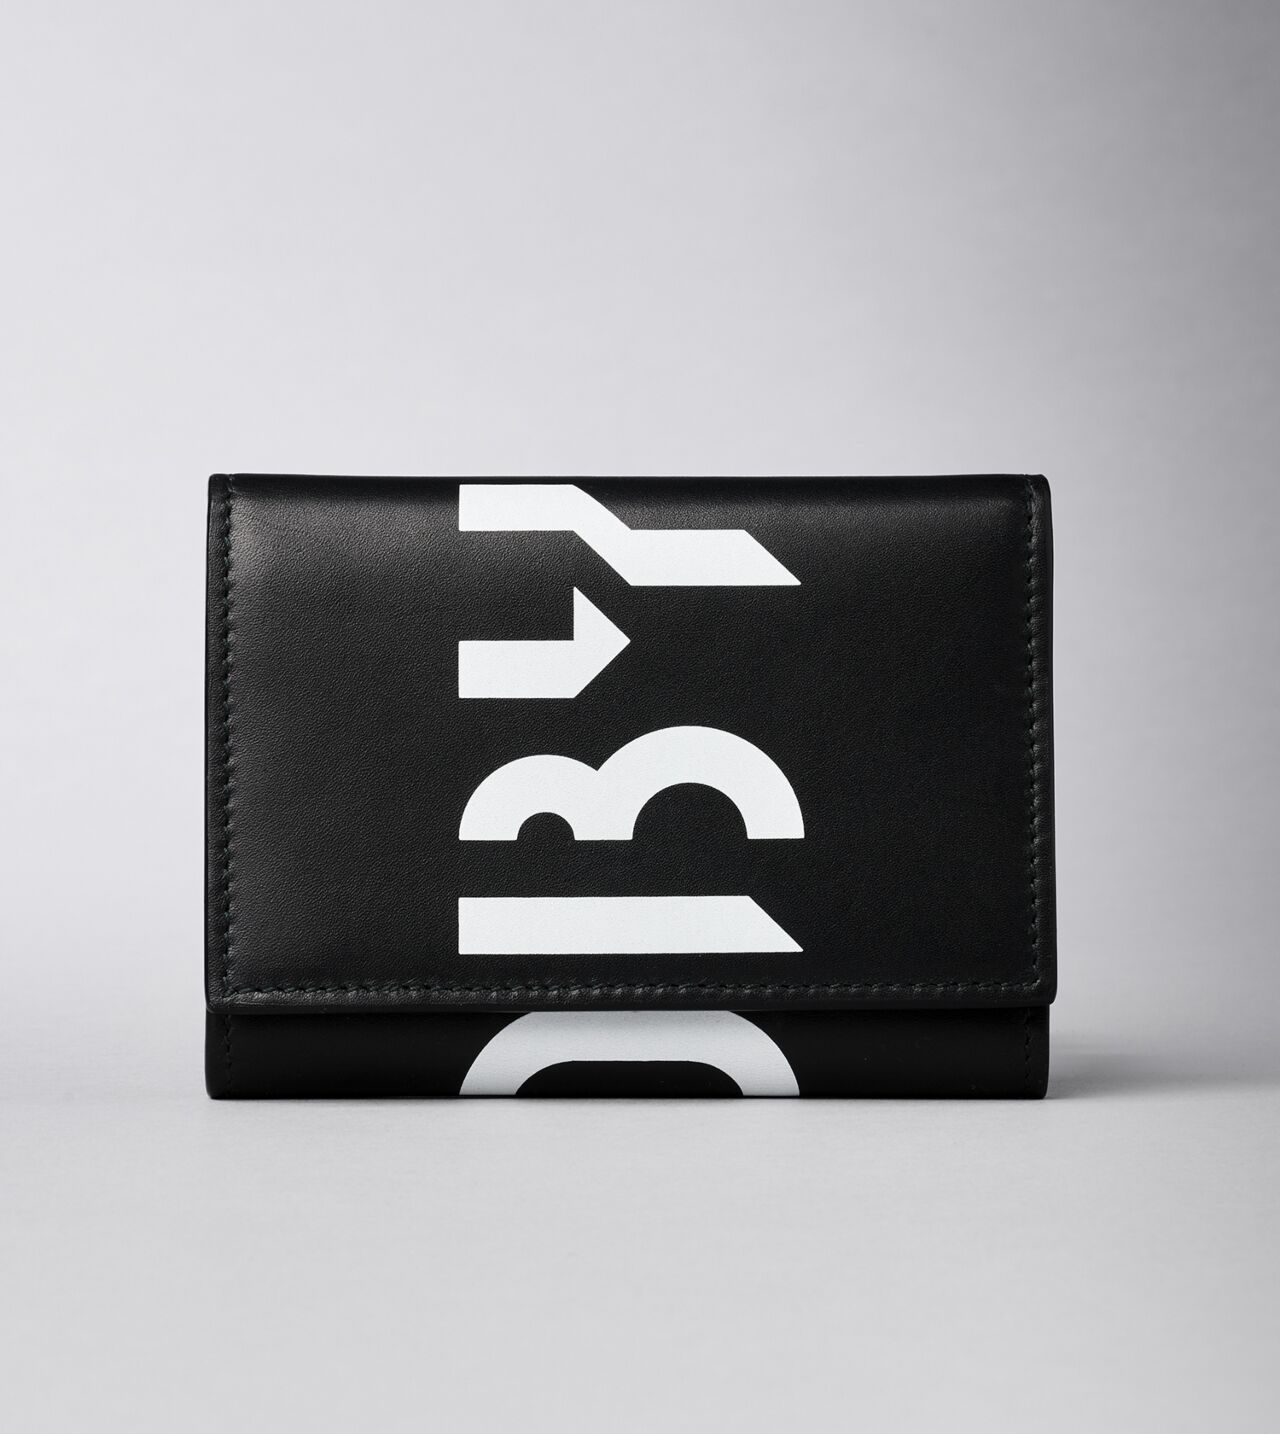 Picture of Byredo Flap wallet in Black printed leather